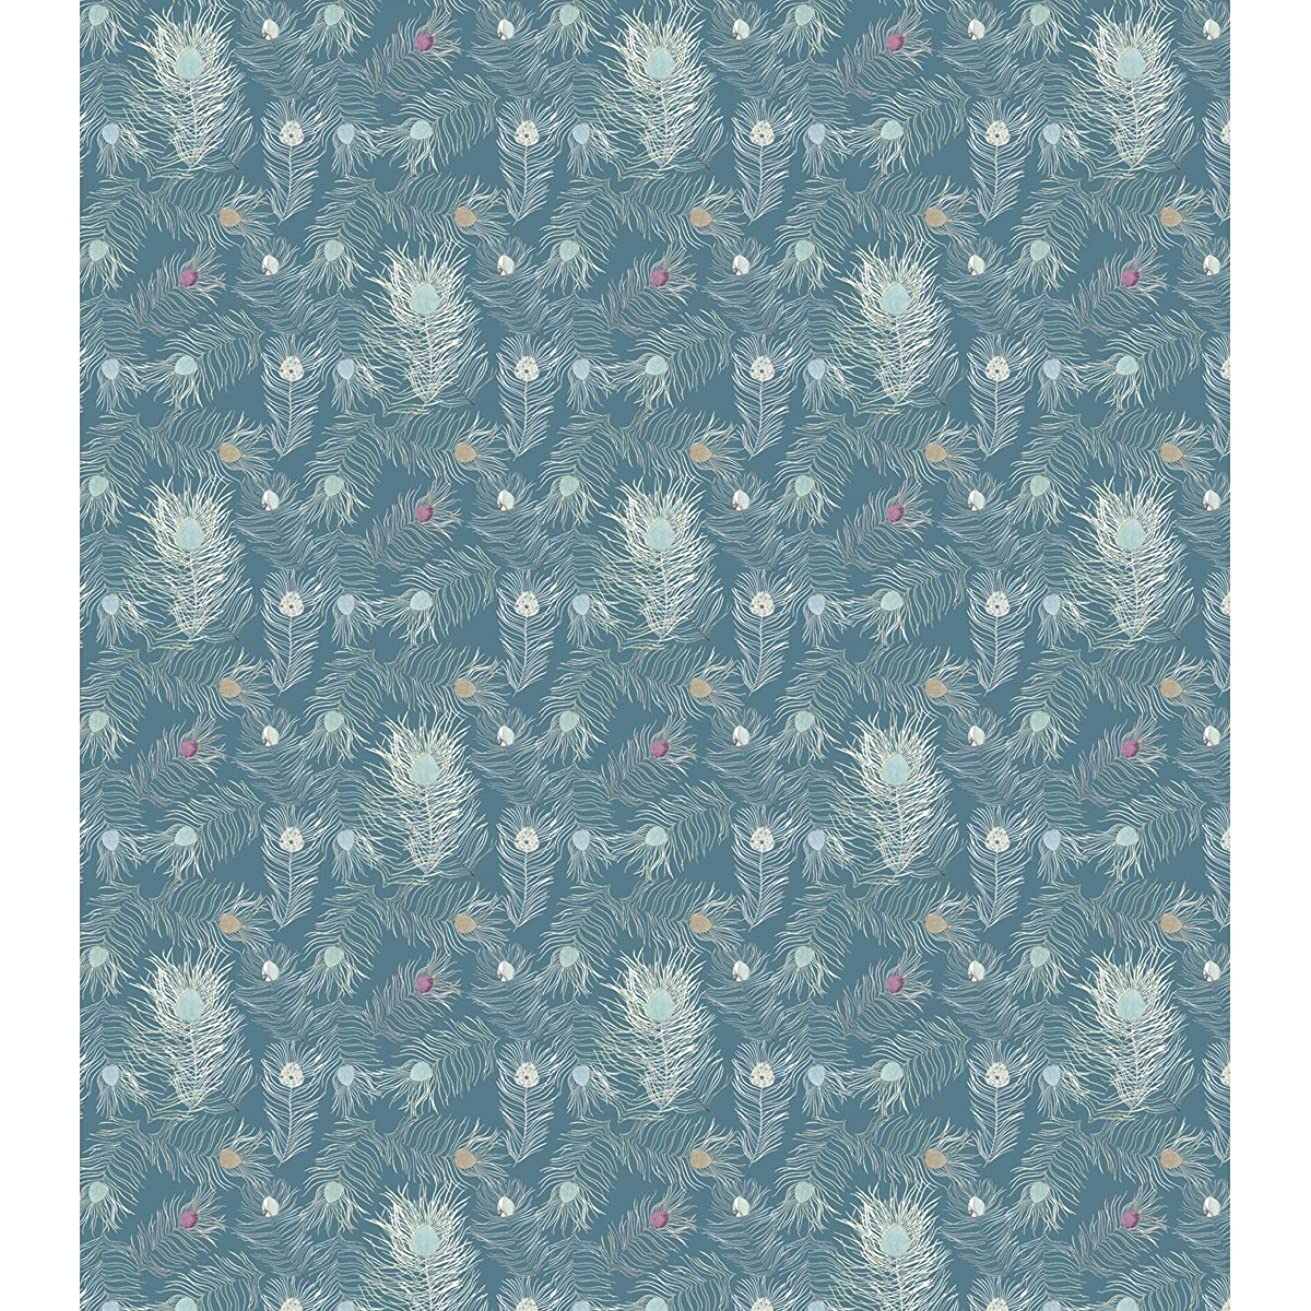 Craft Consortium Decoupage Papers (3 Pack), 13.75 x 15.75, Peacock Blue